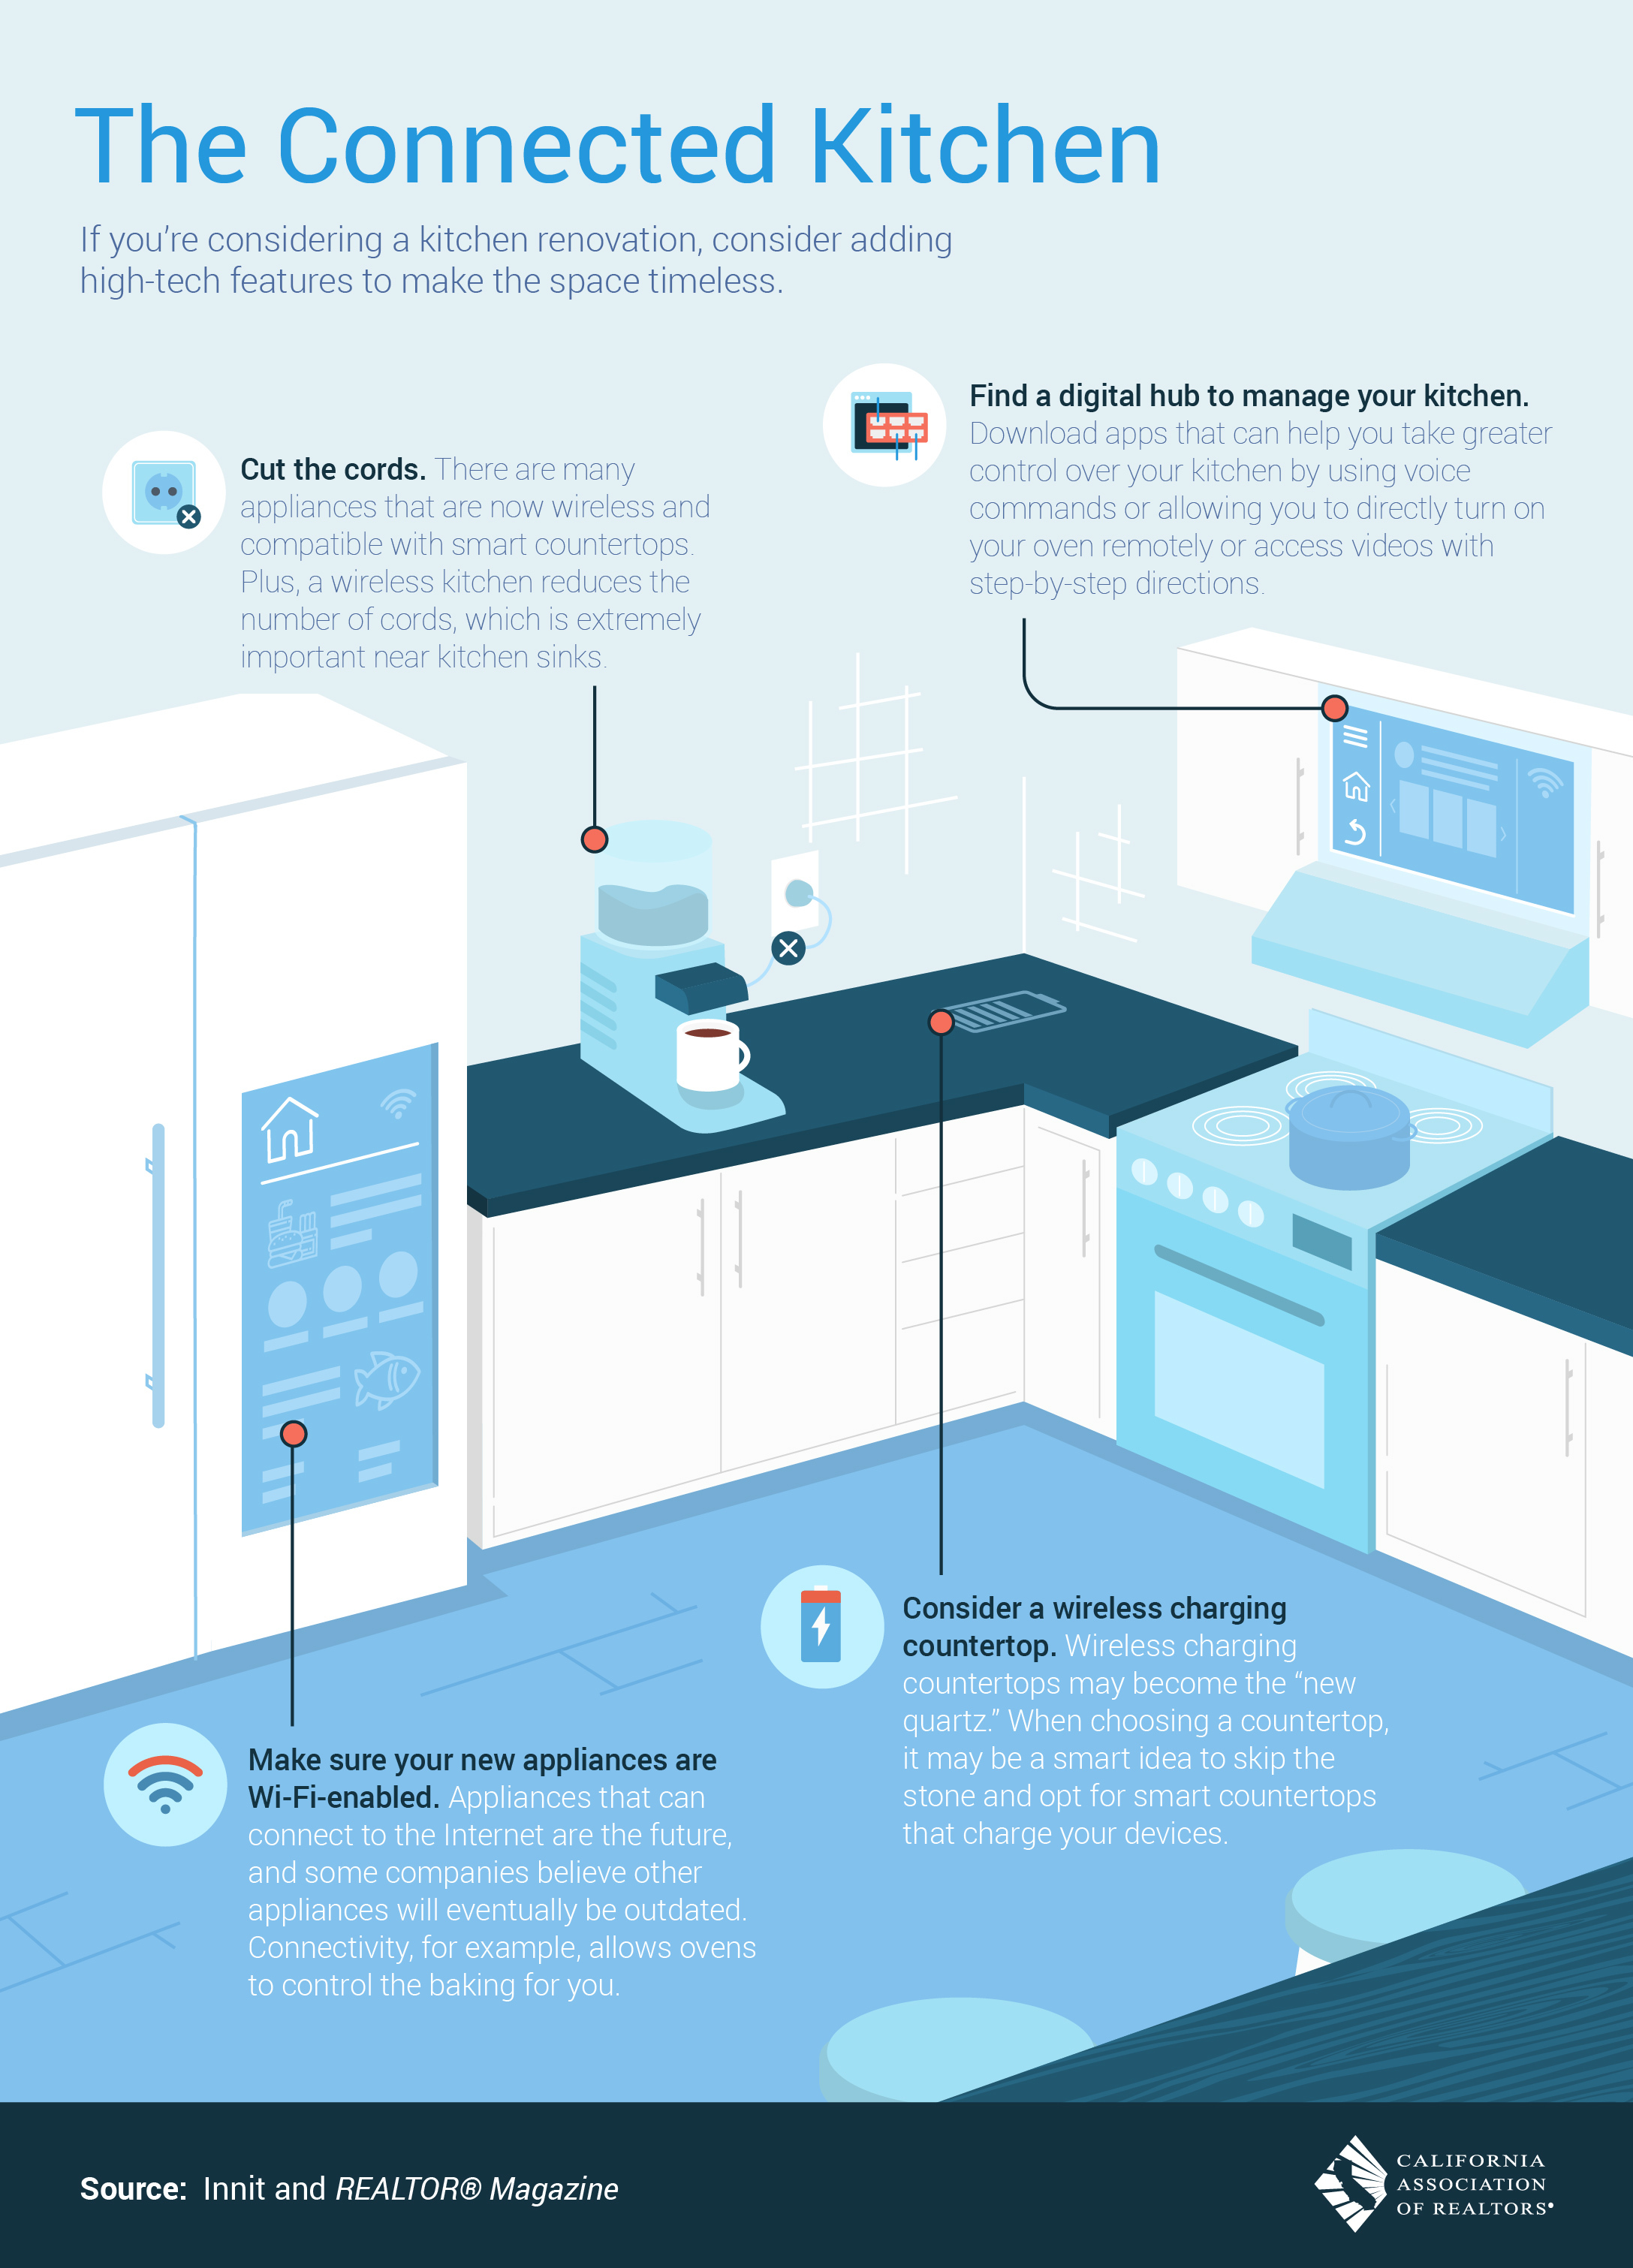 Fully wi-fi connected kitchen?  Scary thought!